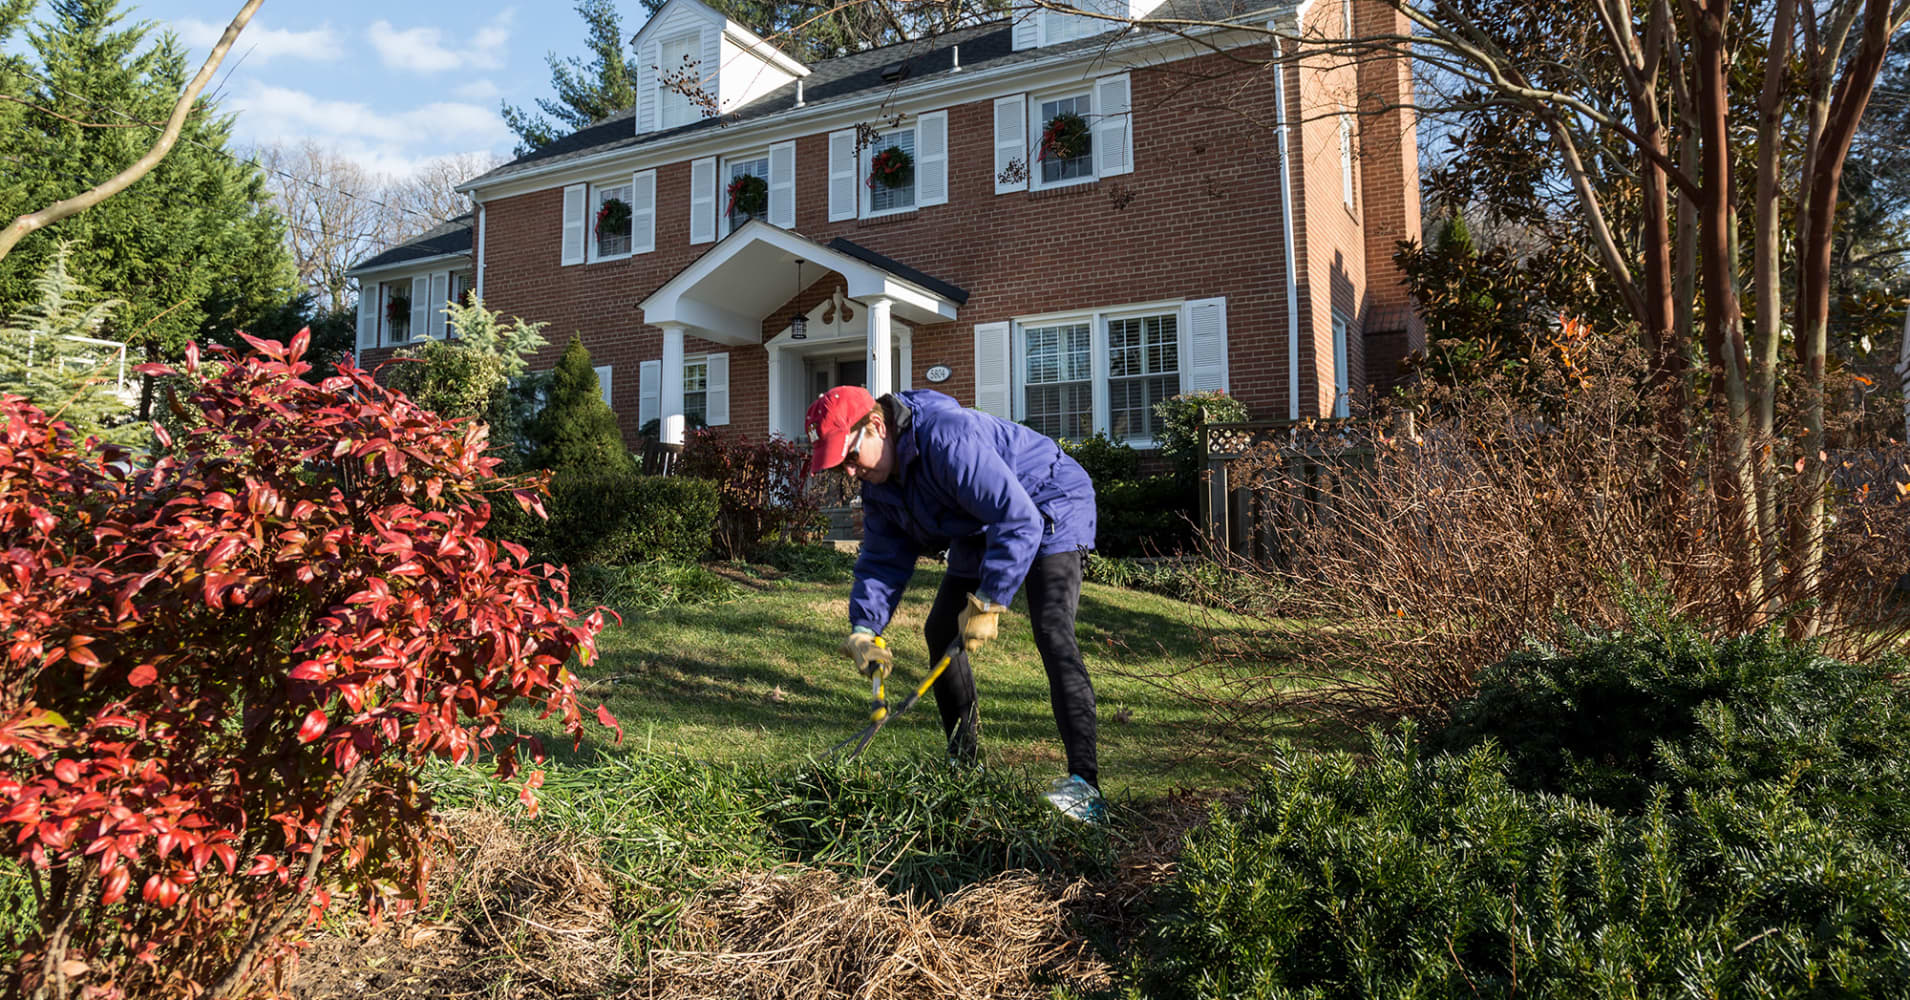 A homeowner trims her yard in the Kenwood Park neighborhood on Dec. 10, 2016 in Bethesda, Md.